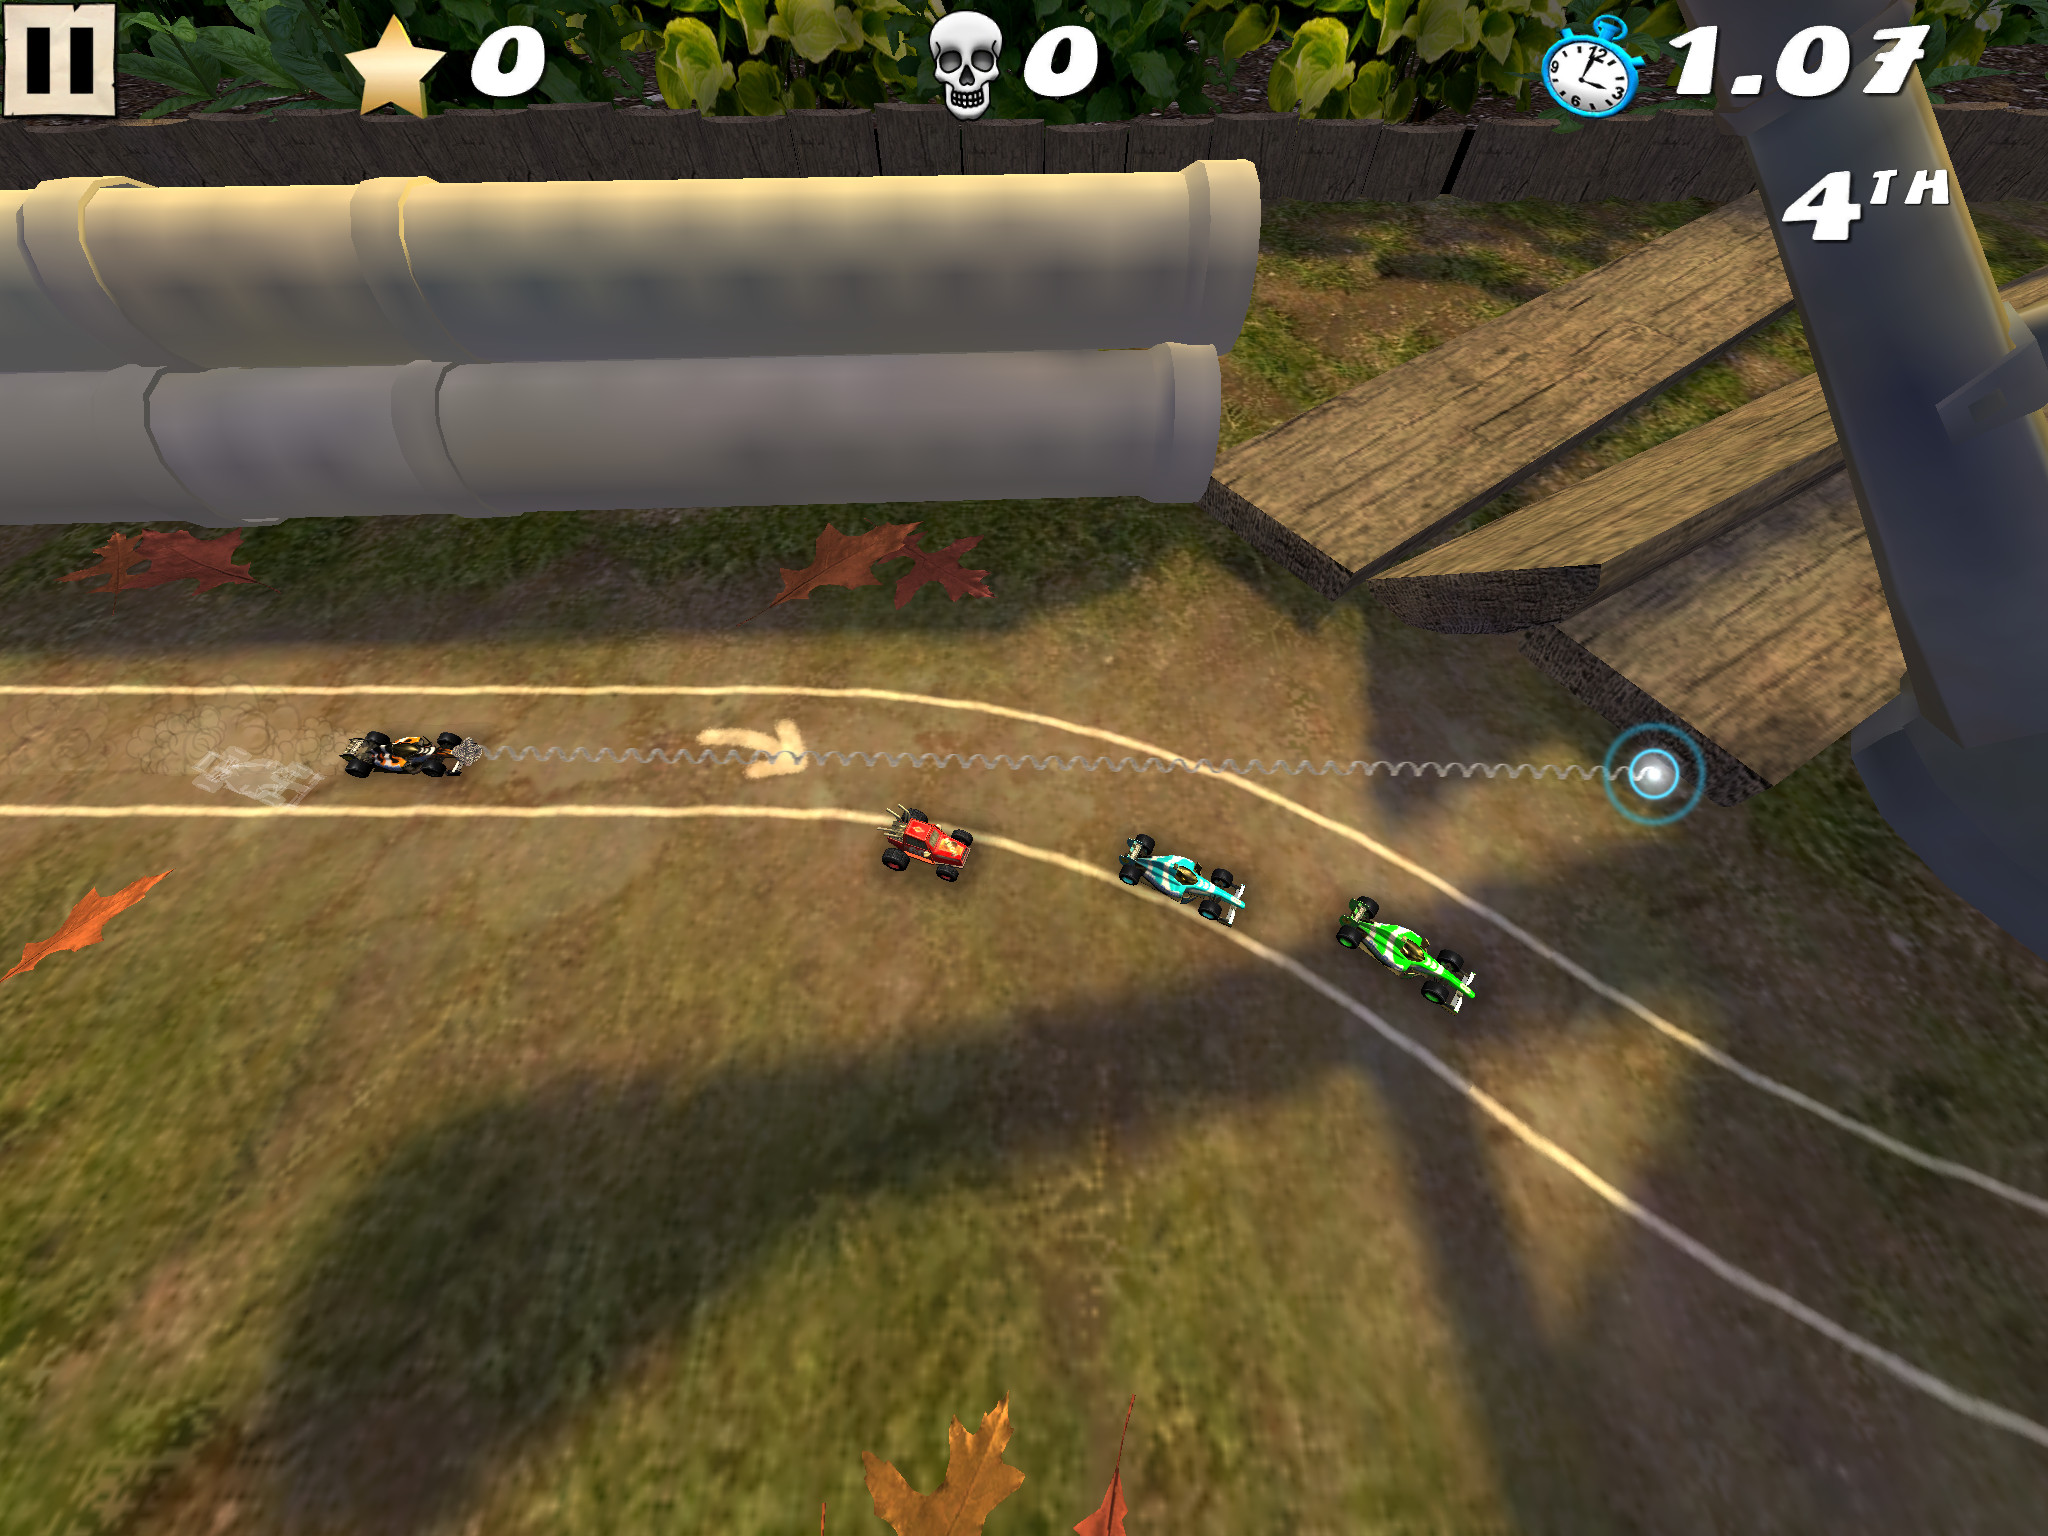 Swing Racers - Woozy graphics spoil the fun